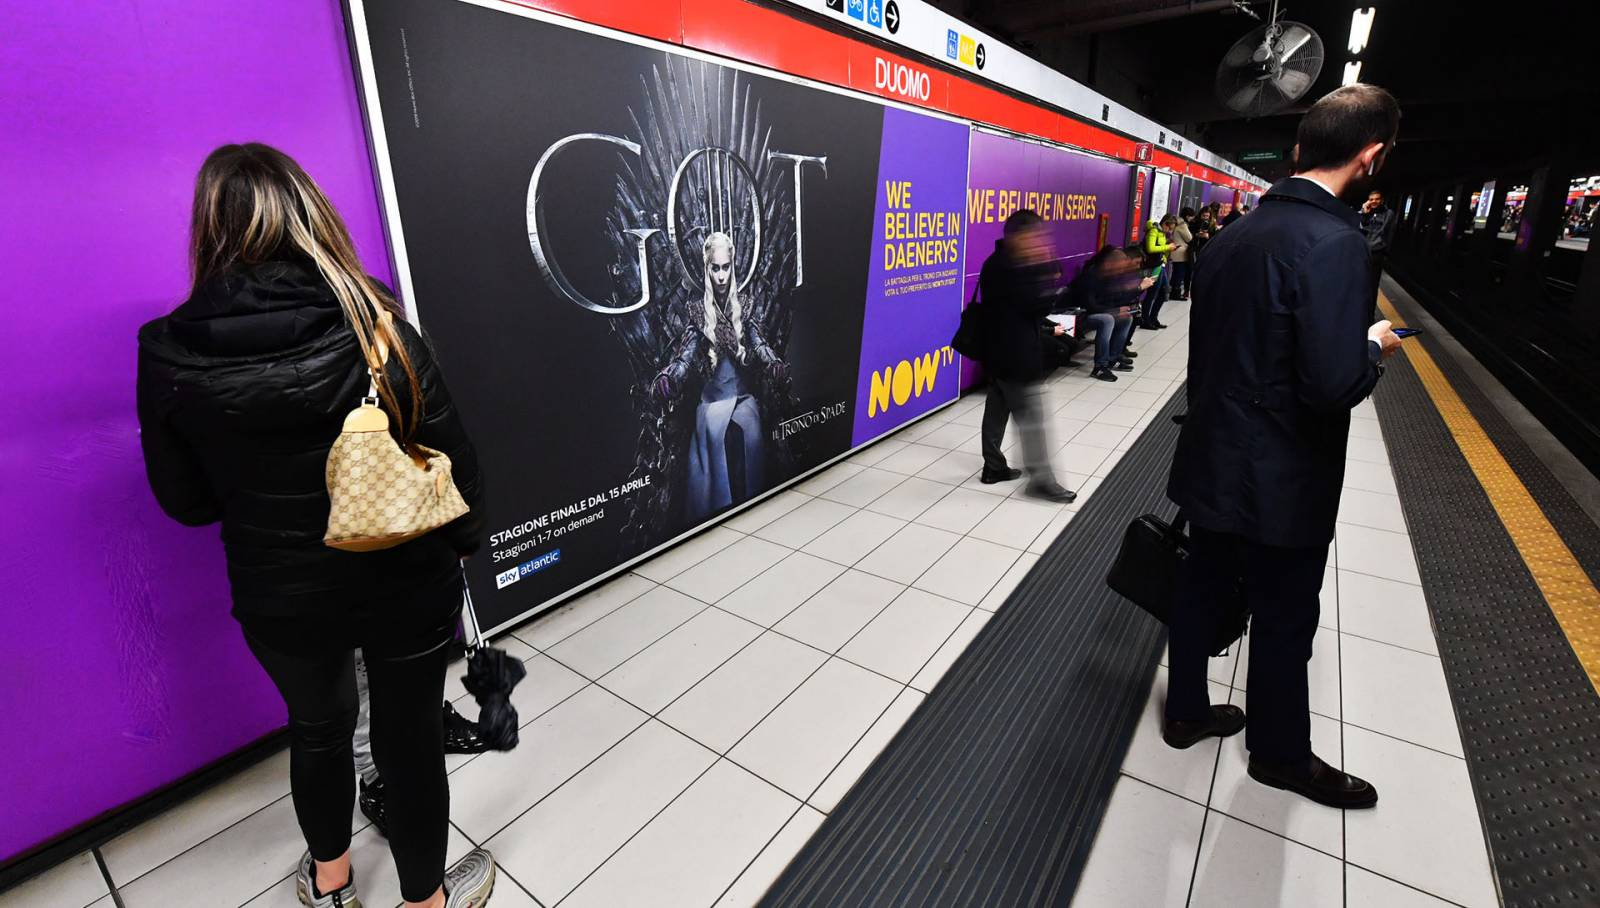 IGPDecaux underground advertising in Milan Station Domination for Games of Thrones Now TV